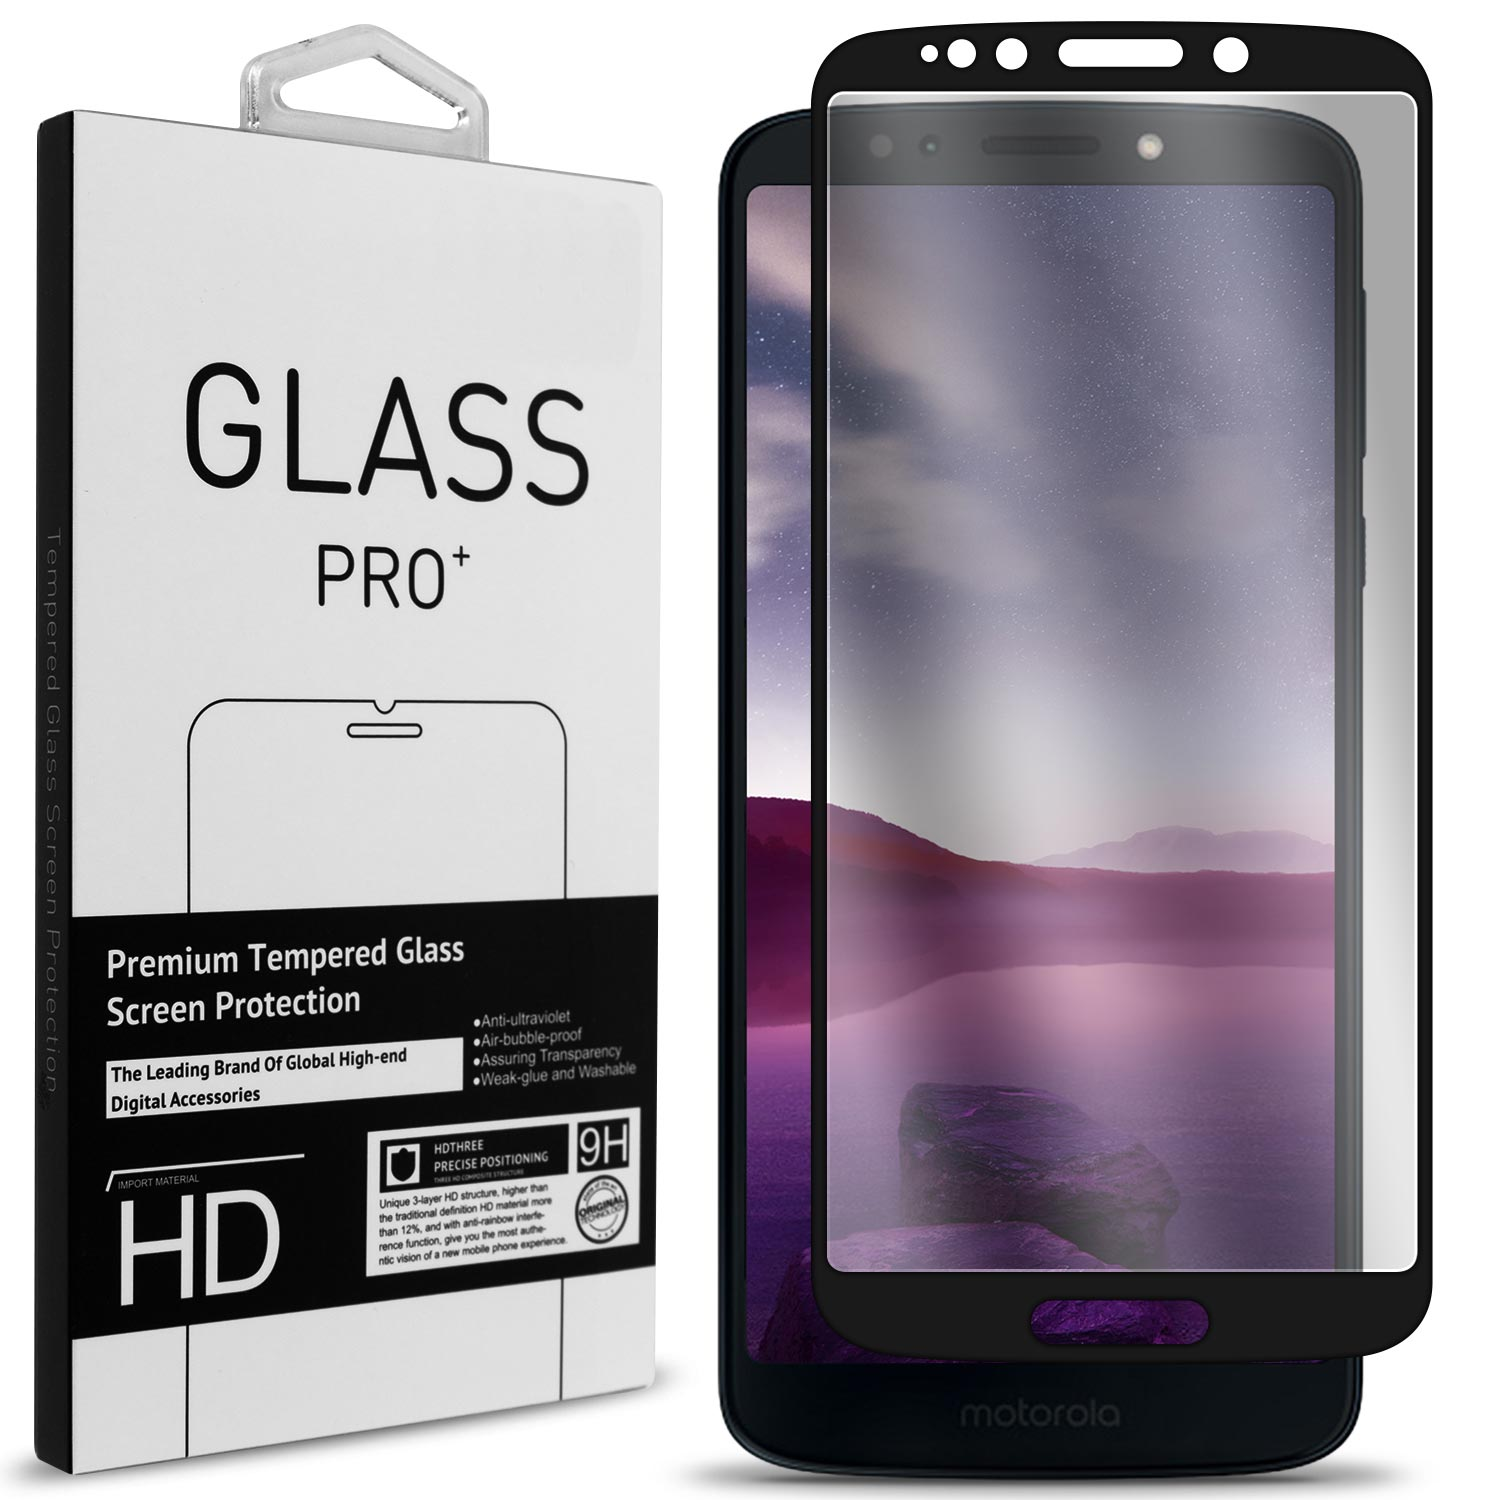 CoverON Motorola Moto G6 Play / Moto G6 Forge Tempered Glass Screen Protector - InvisiGuard Series Full Coverage 9H with Faceplate (Case Friendly)